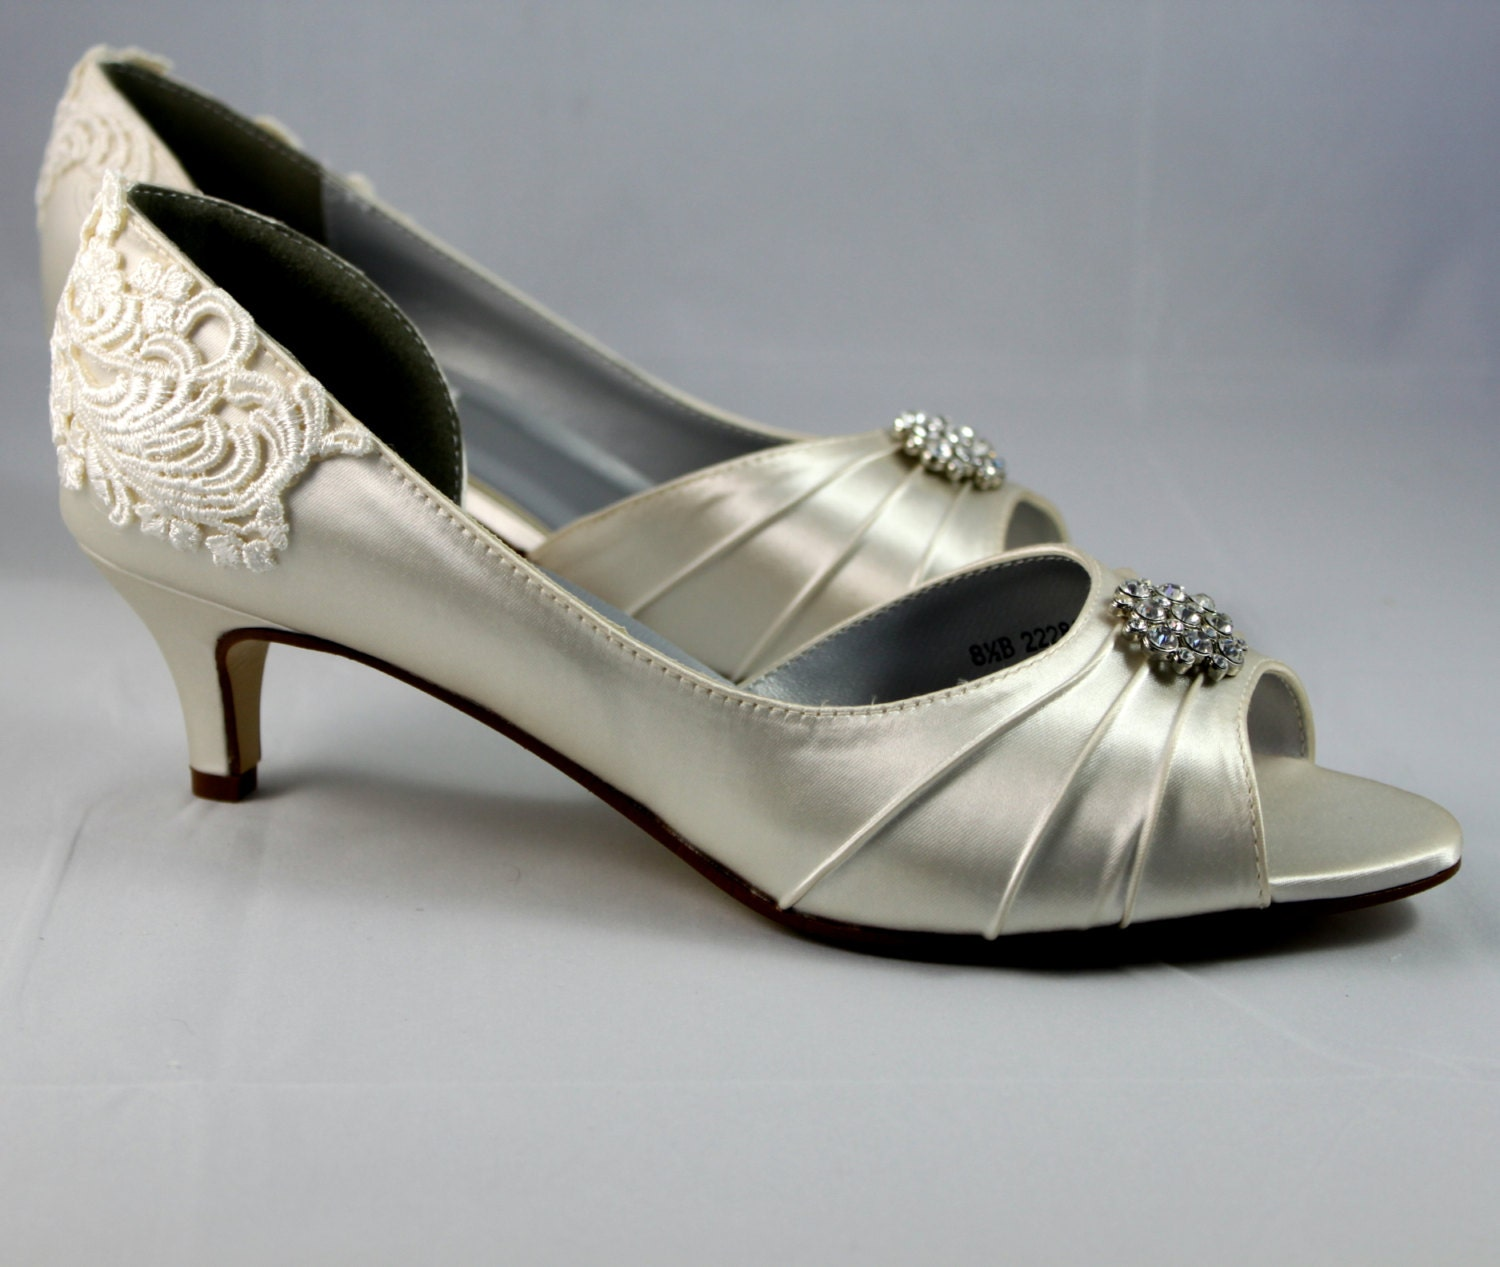 wide width wedding shoes low heel ivory wedding shoes wedding shoe low heel size 8 5 1410